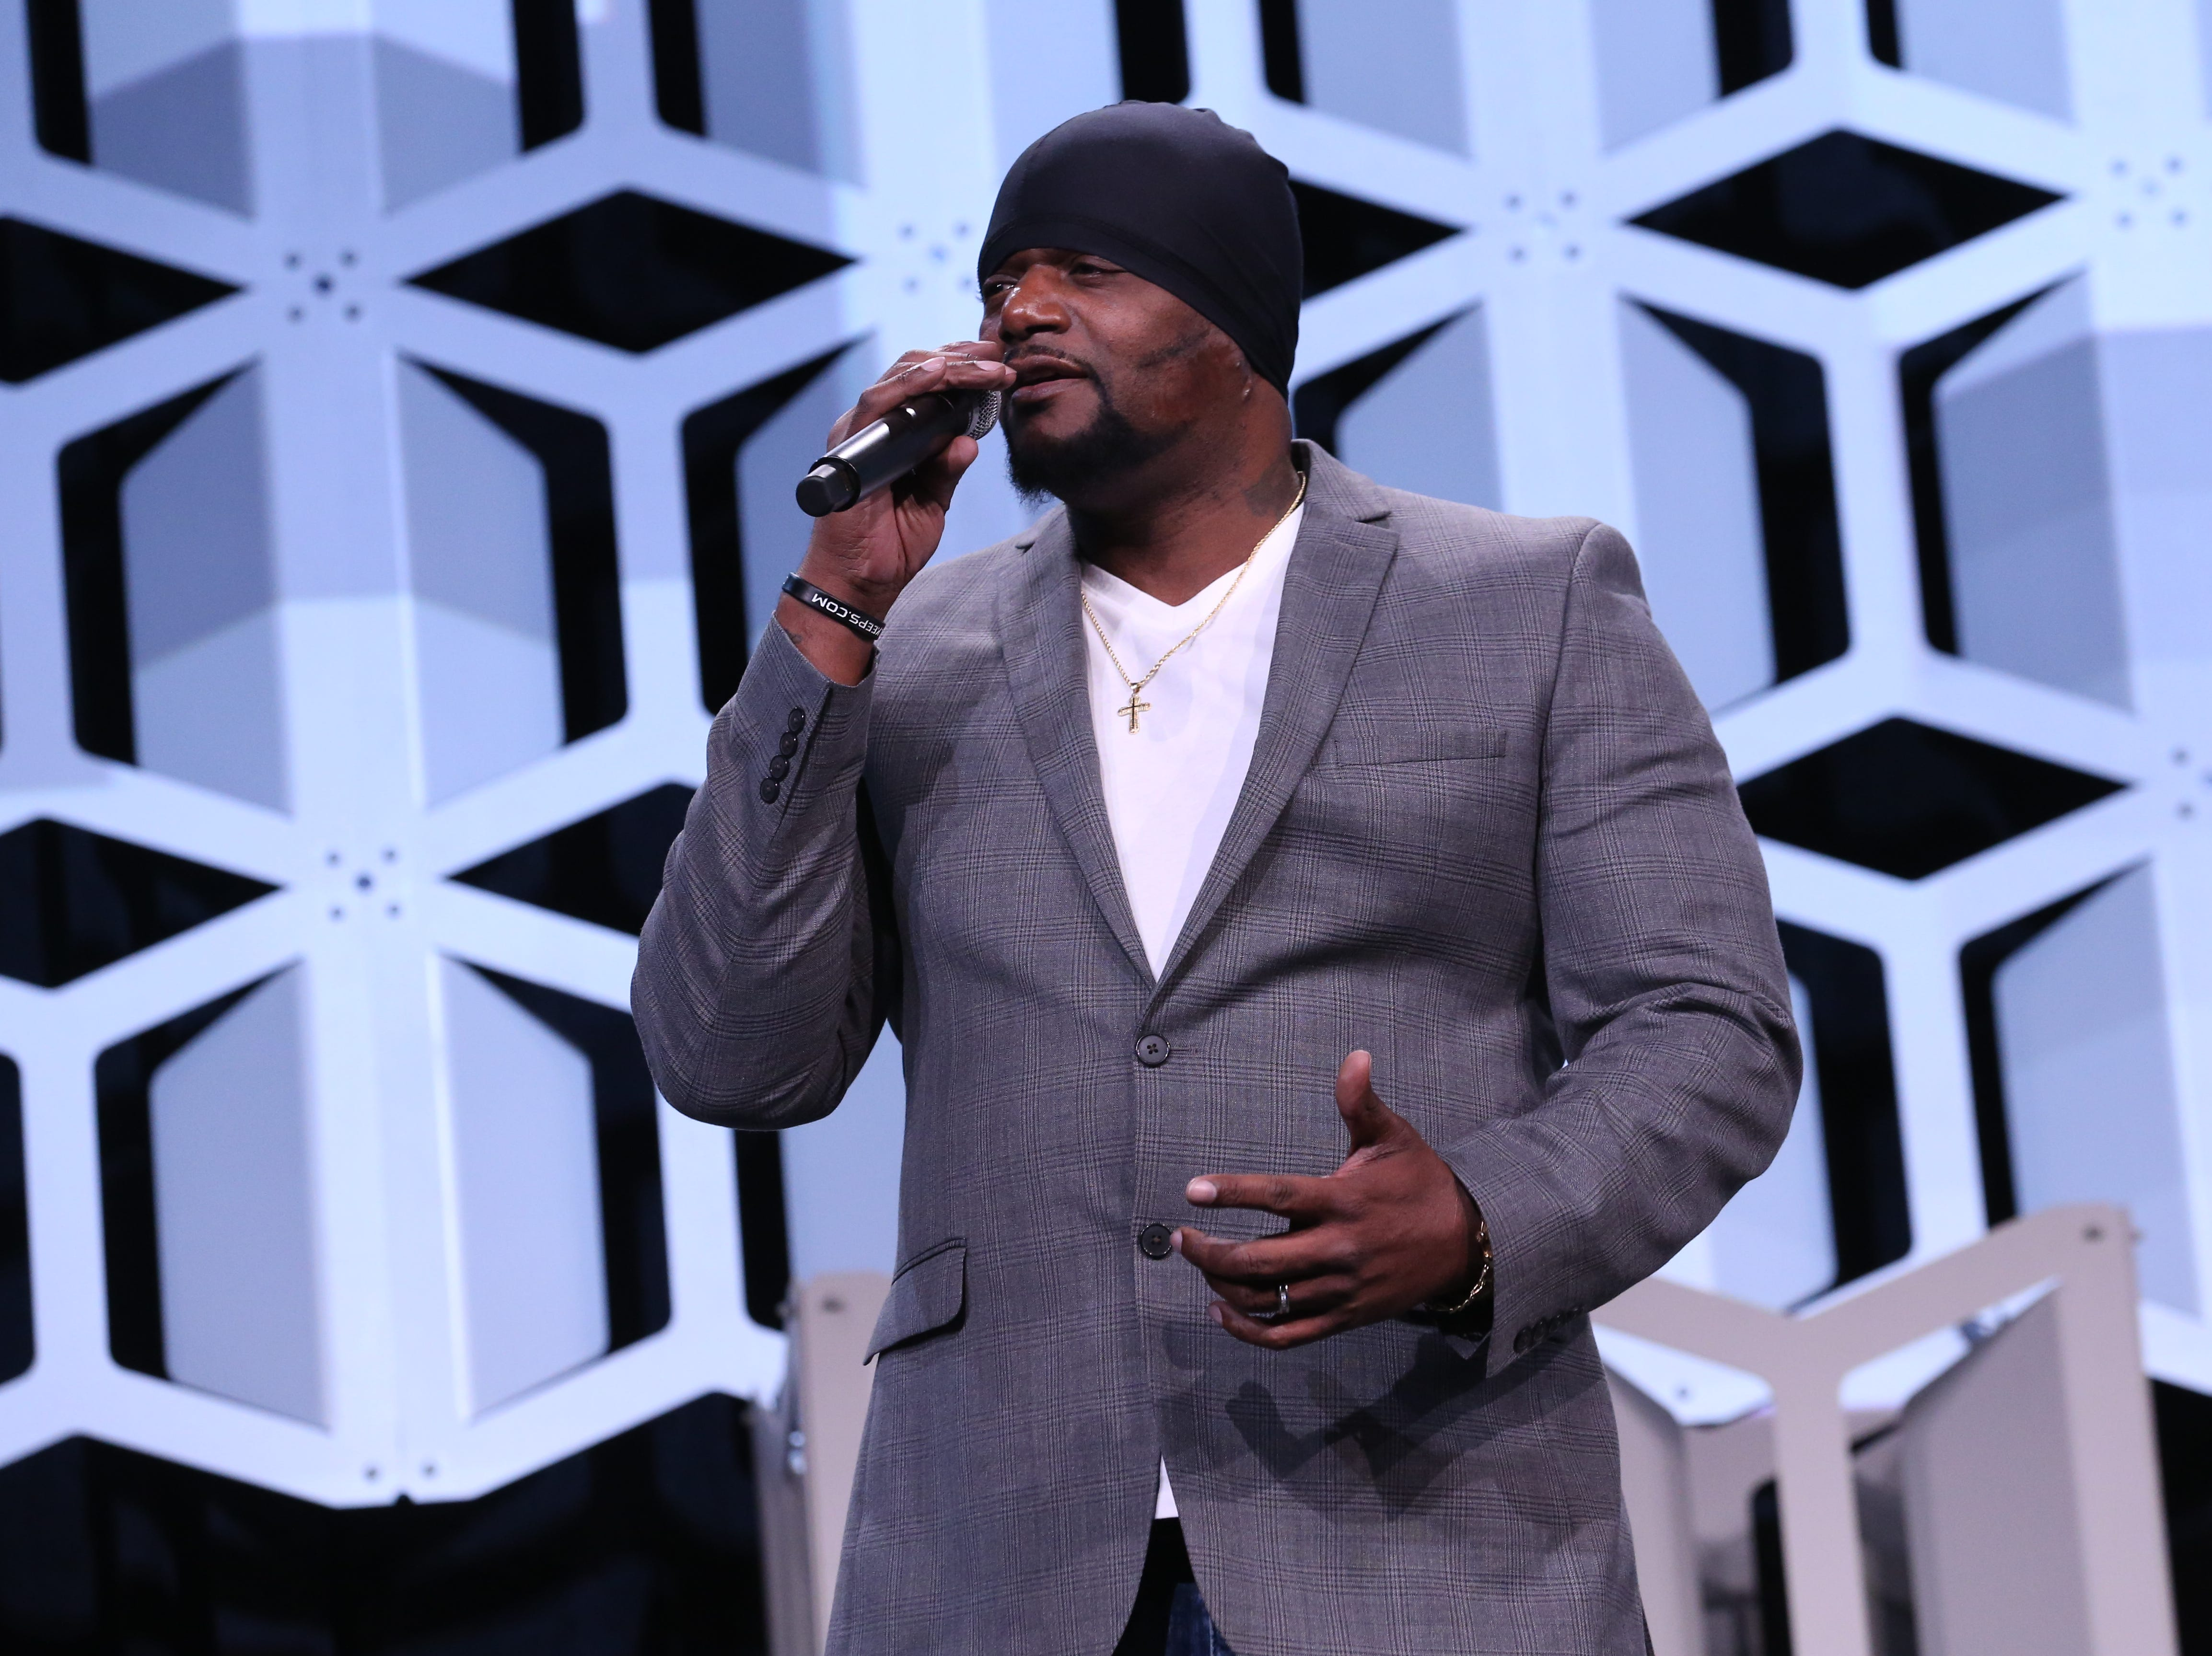 Artist and community activist Will Keeps, who produced a music video for the event, addresses the crowd at Partnership's Annual Dinner on January 17, 2019 at the Iowa Events Center.